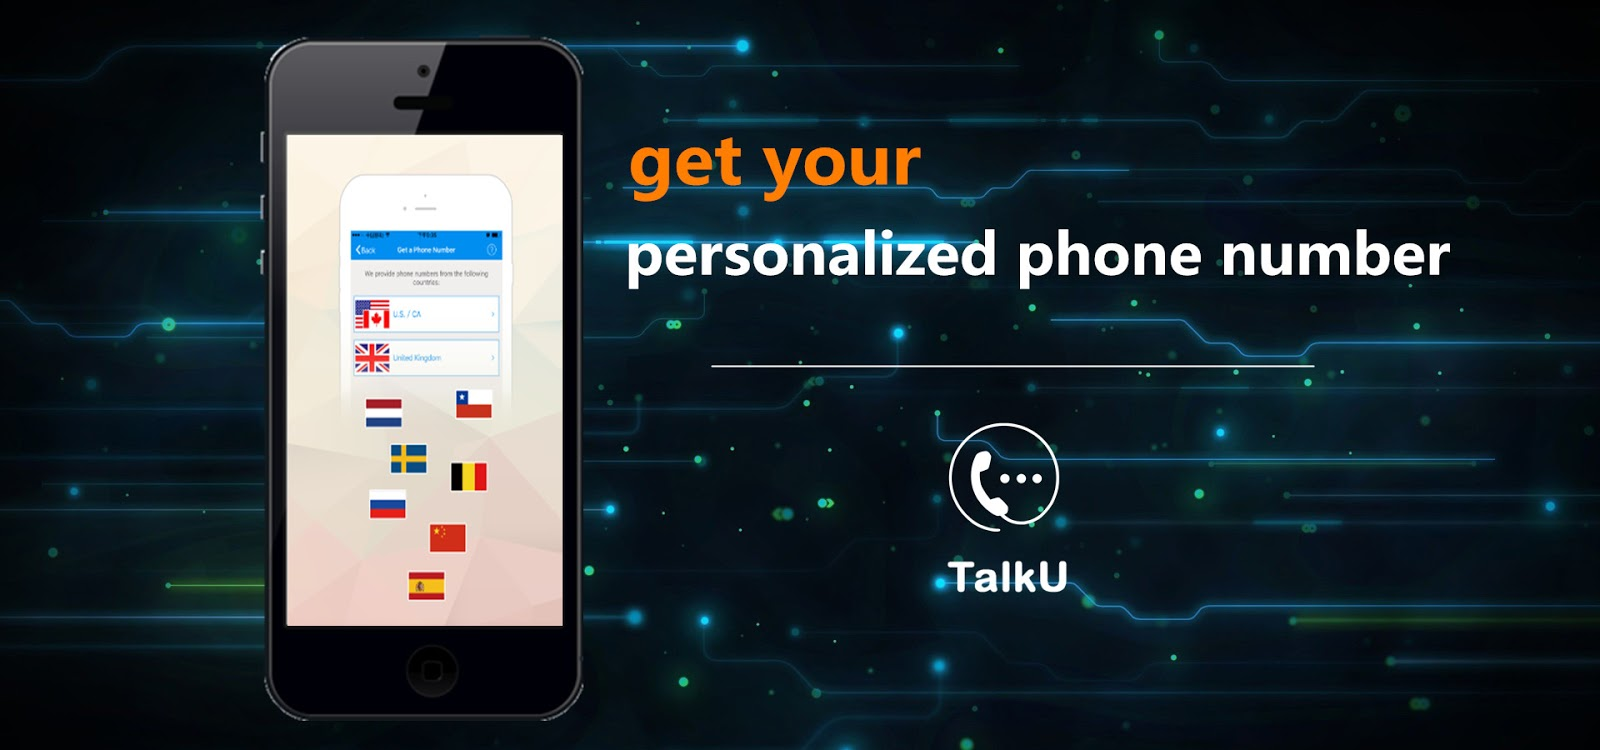 3 Best Free WiFi Calling App that You Should Know